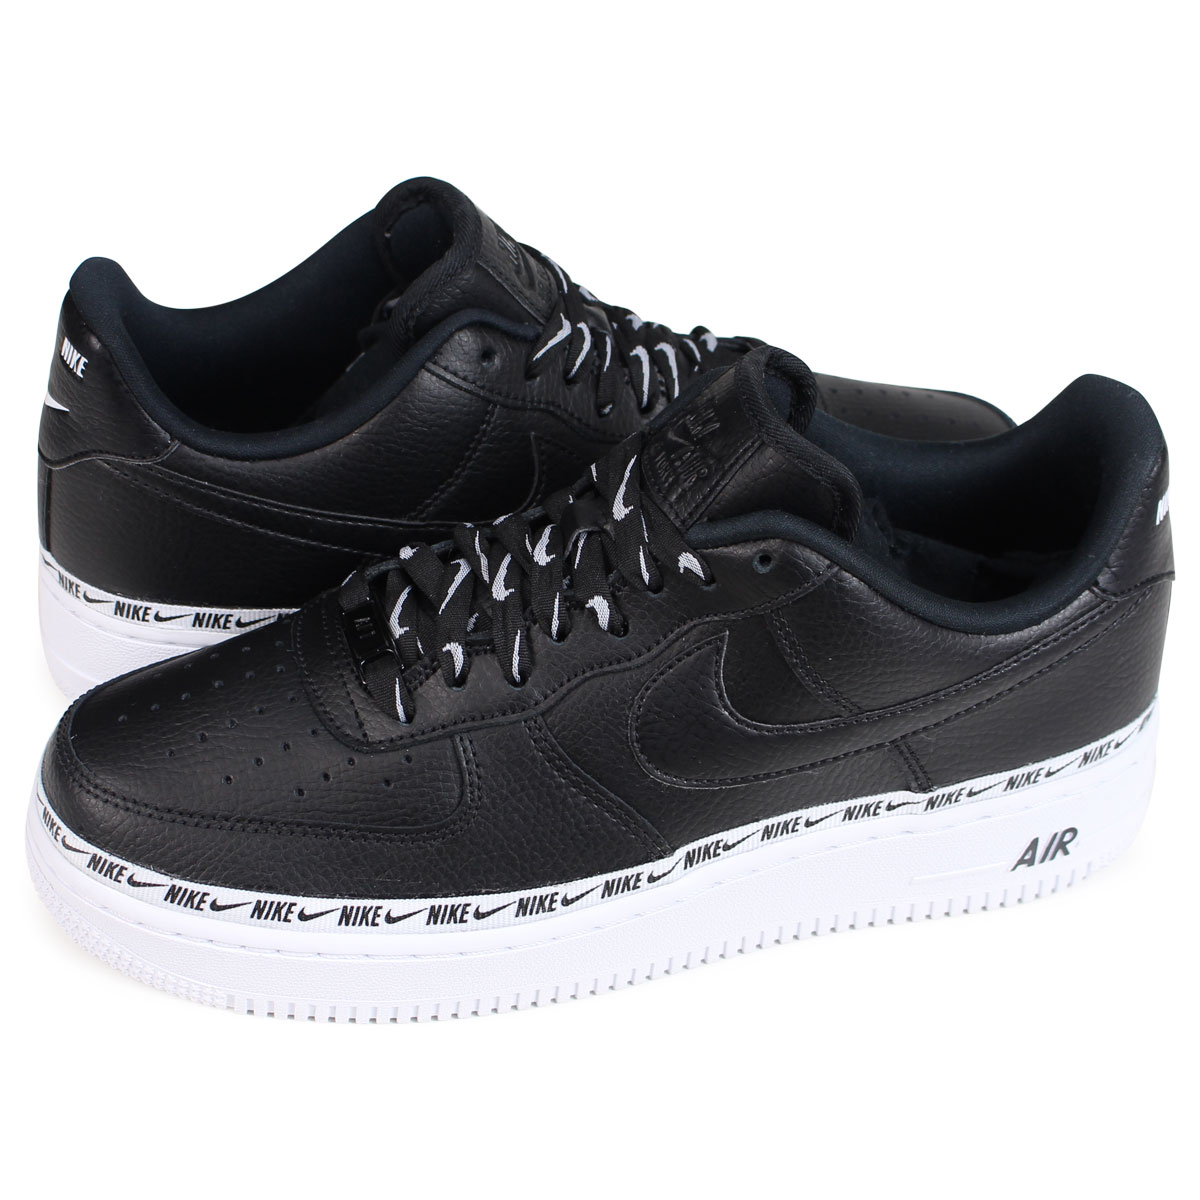 NIKE 1 AH6827 planned product WMNS blackload force men's SE Shinnyu PREMIUM 1112 FORCE load Nike in 1 07 002 AIR sneakers air reservation lady's QrBoexdCW